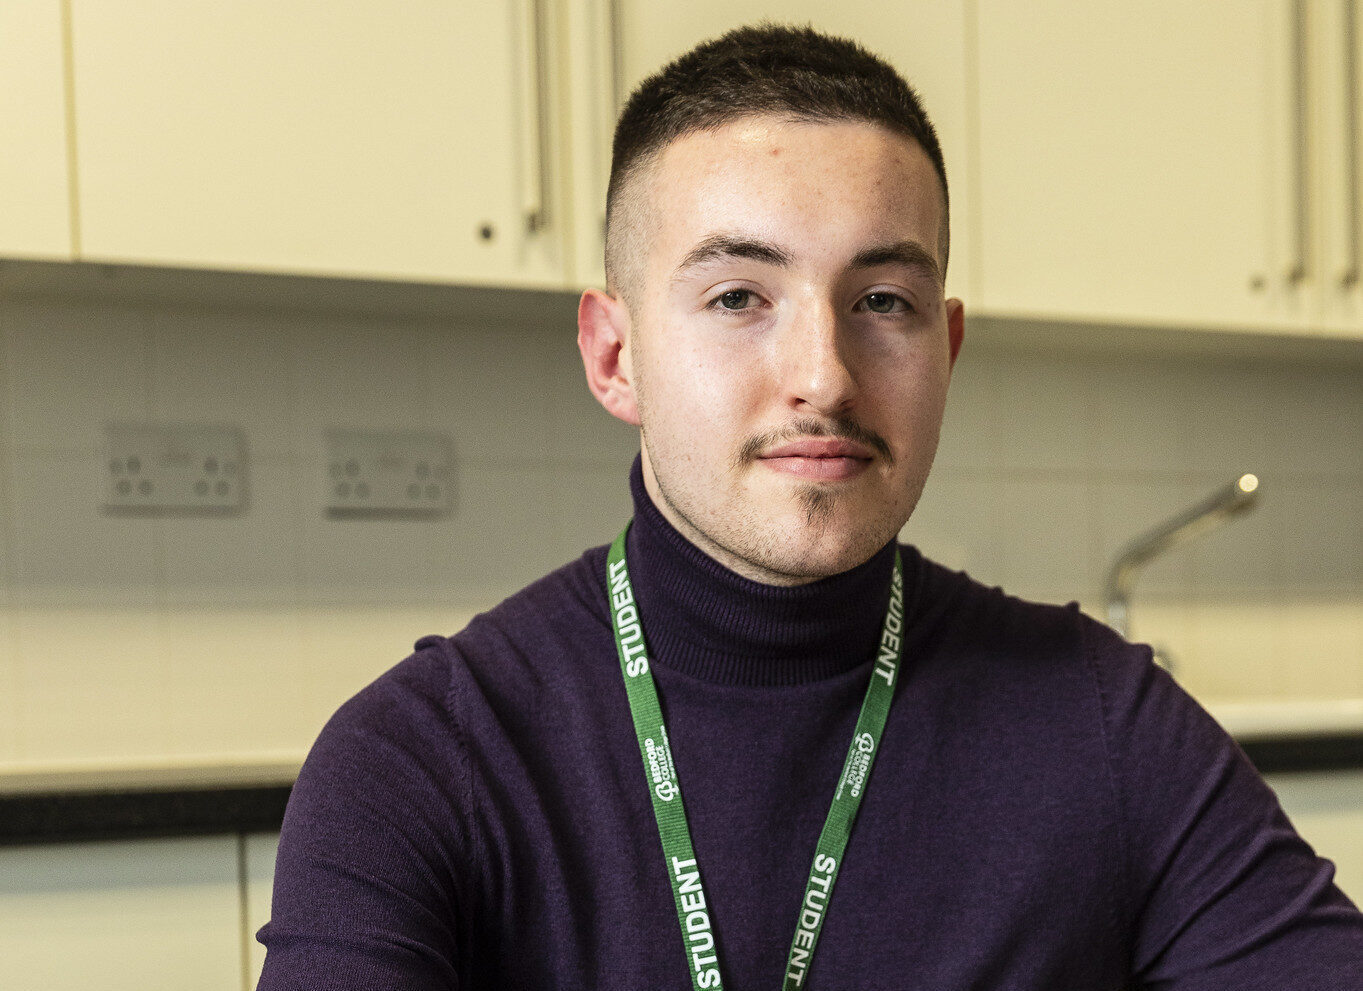 Care and Childcare student Bedford College